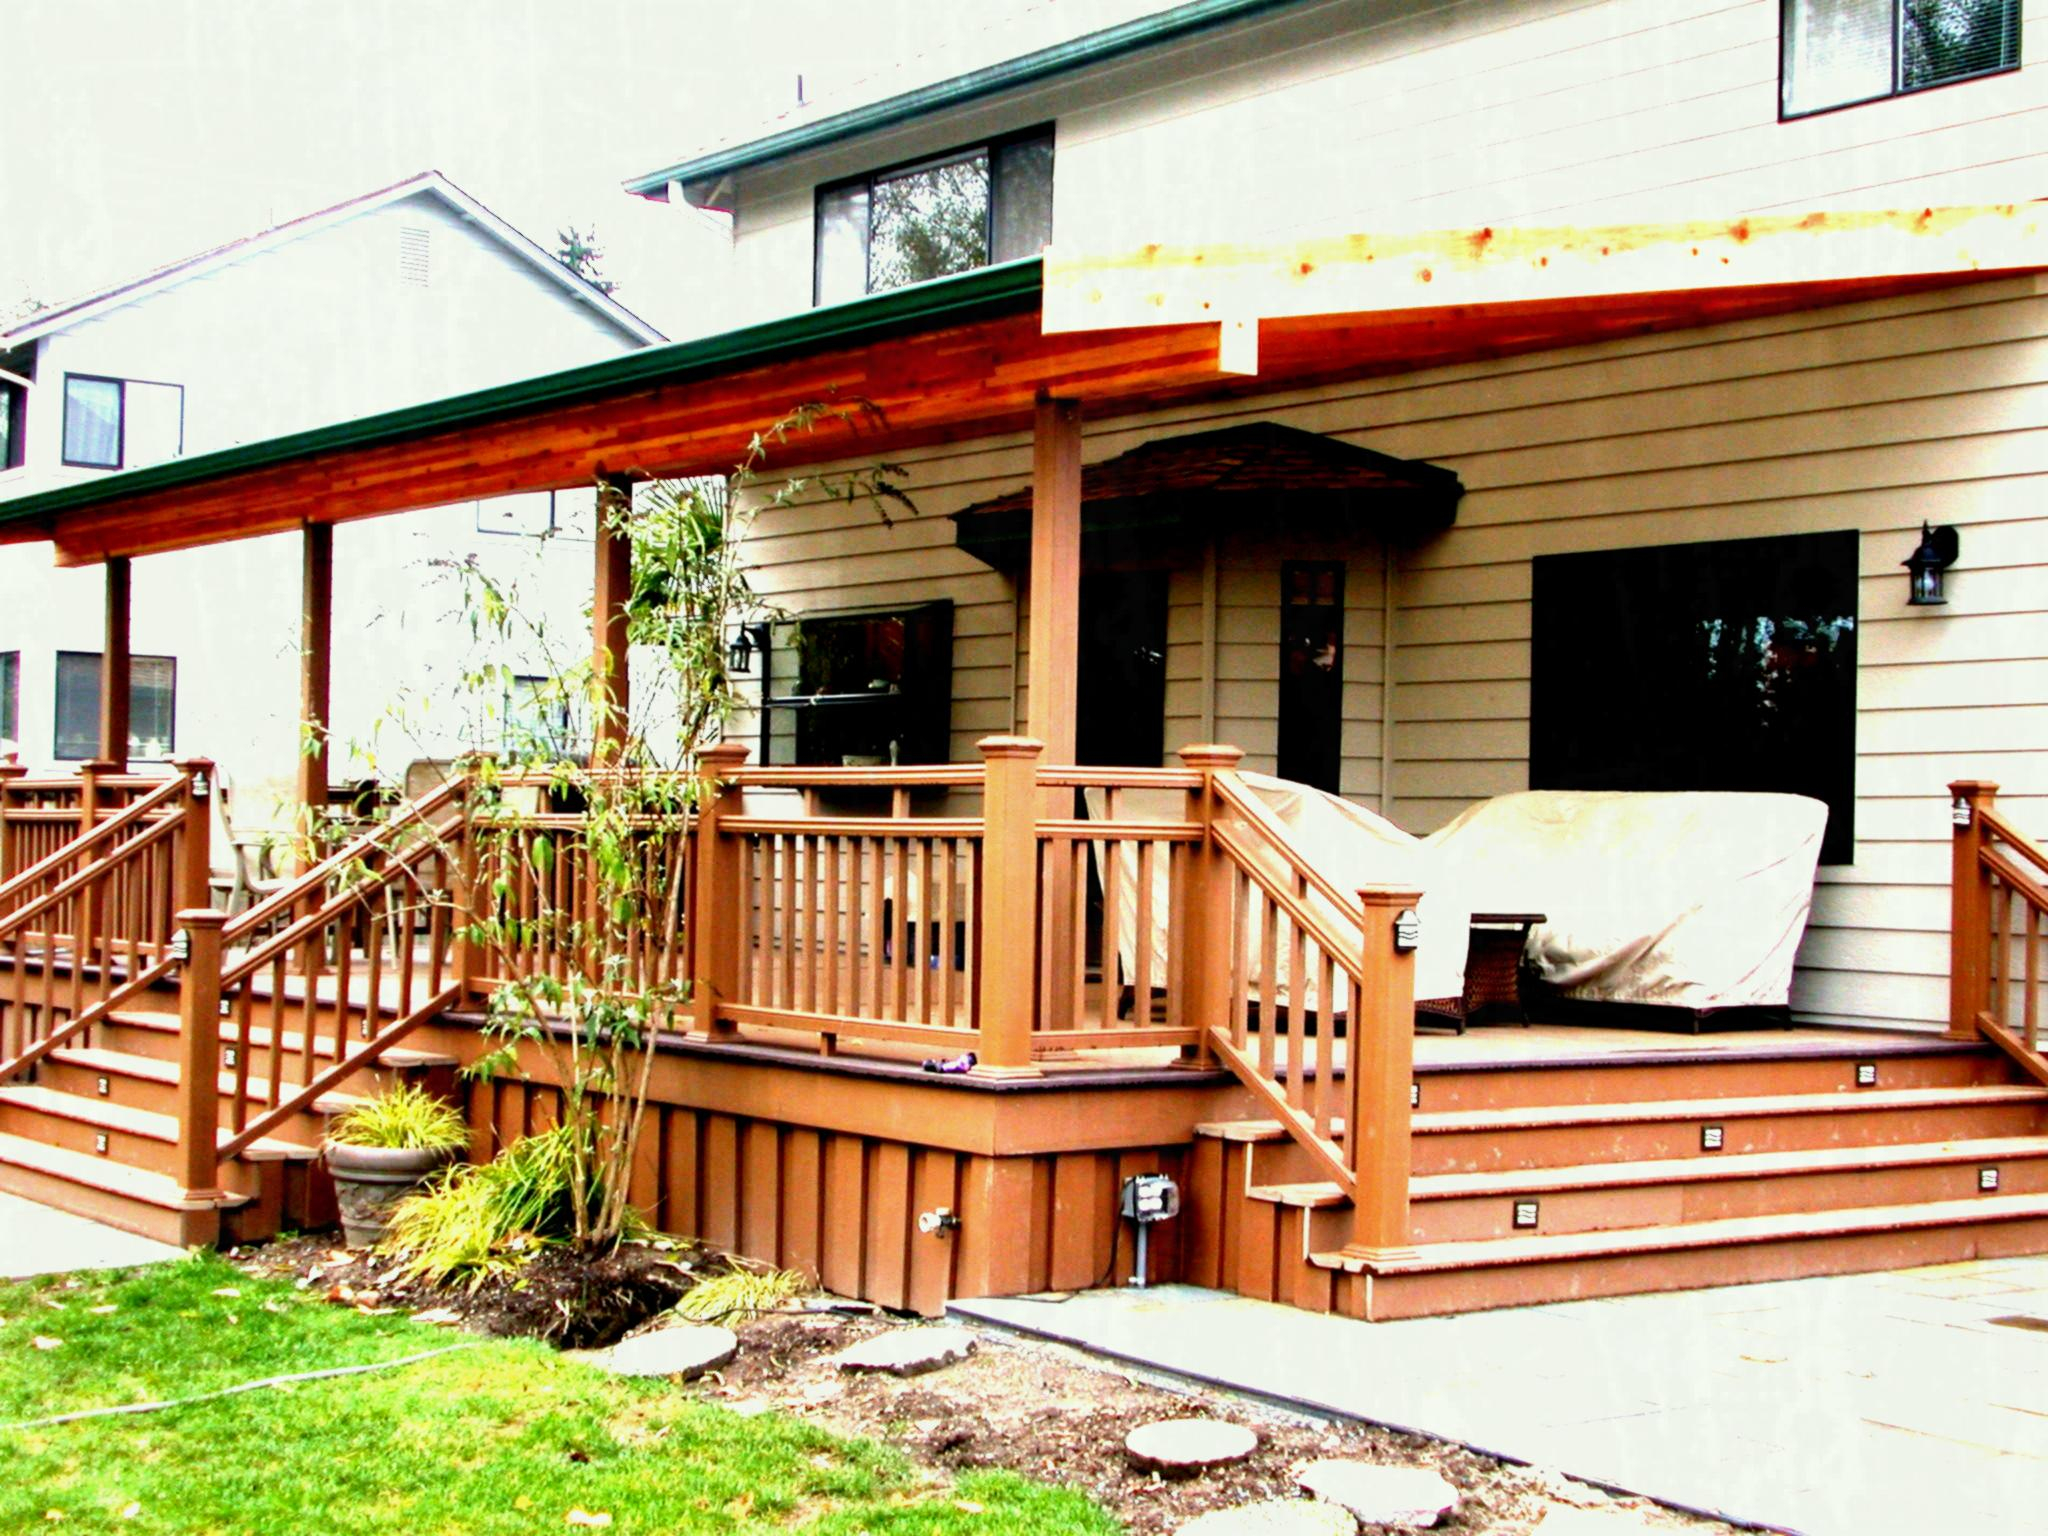 Different Deck Designs With Photos E Patio Design And Ideas Image Of Within  Size 2048 X